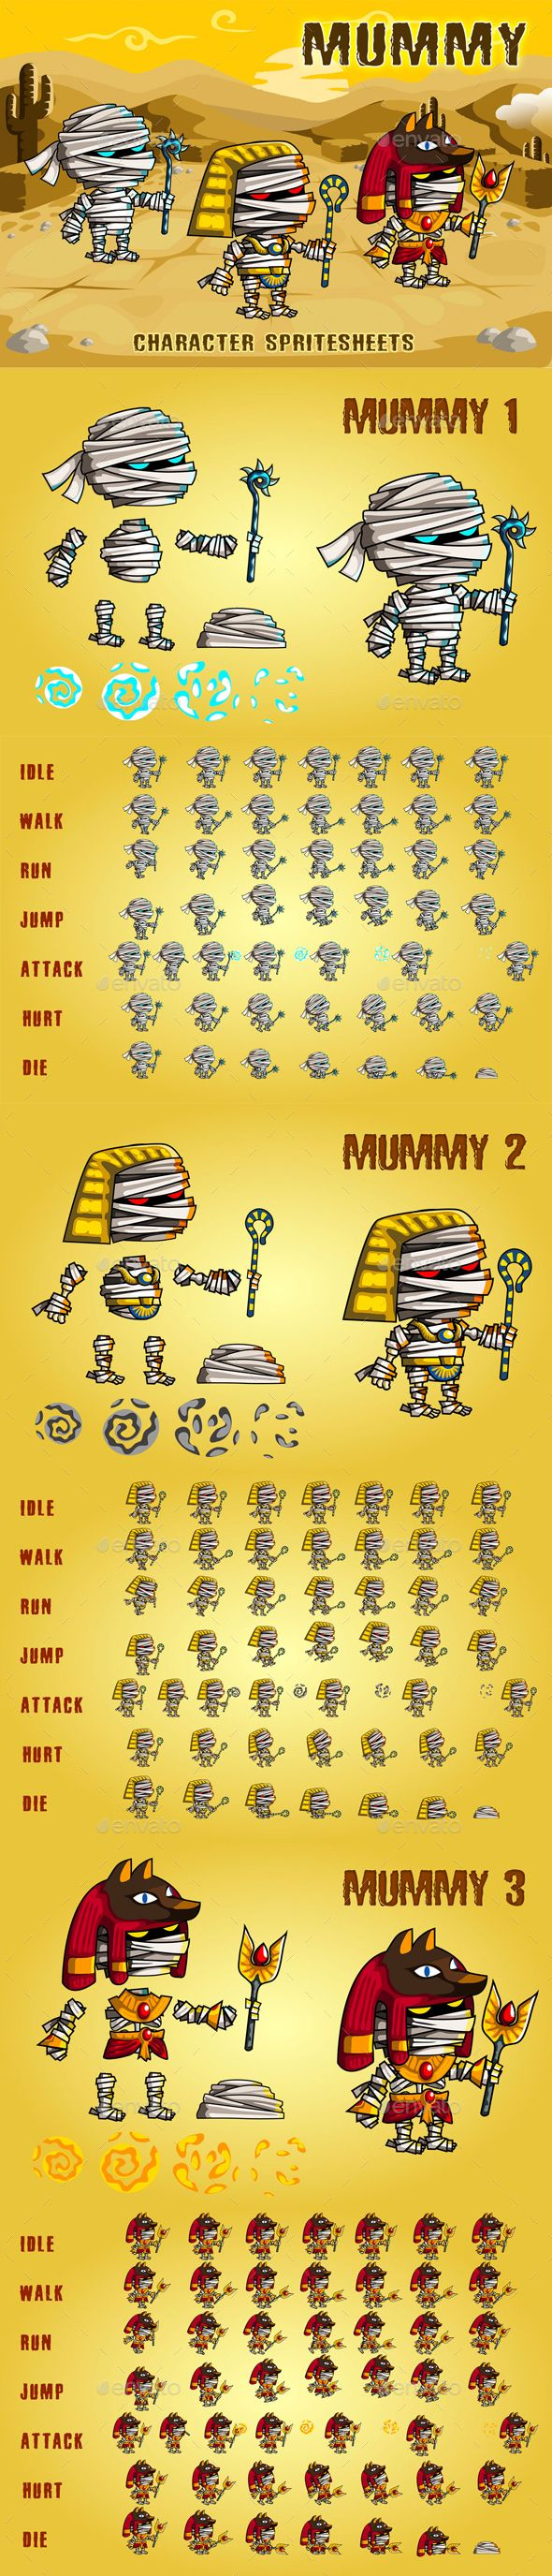 #Mummies #2D #Game #Character #Sprite #Sheet #template - #mummy #Sprites Game #Assets #design #Ui #Ux. download here: https://graphicriver.net/item/mummies-2d-game-character-sprite-sheet/20199417?ref=yinkira